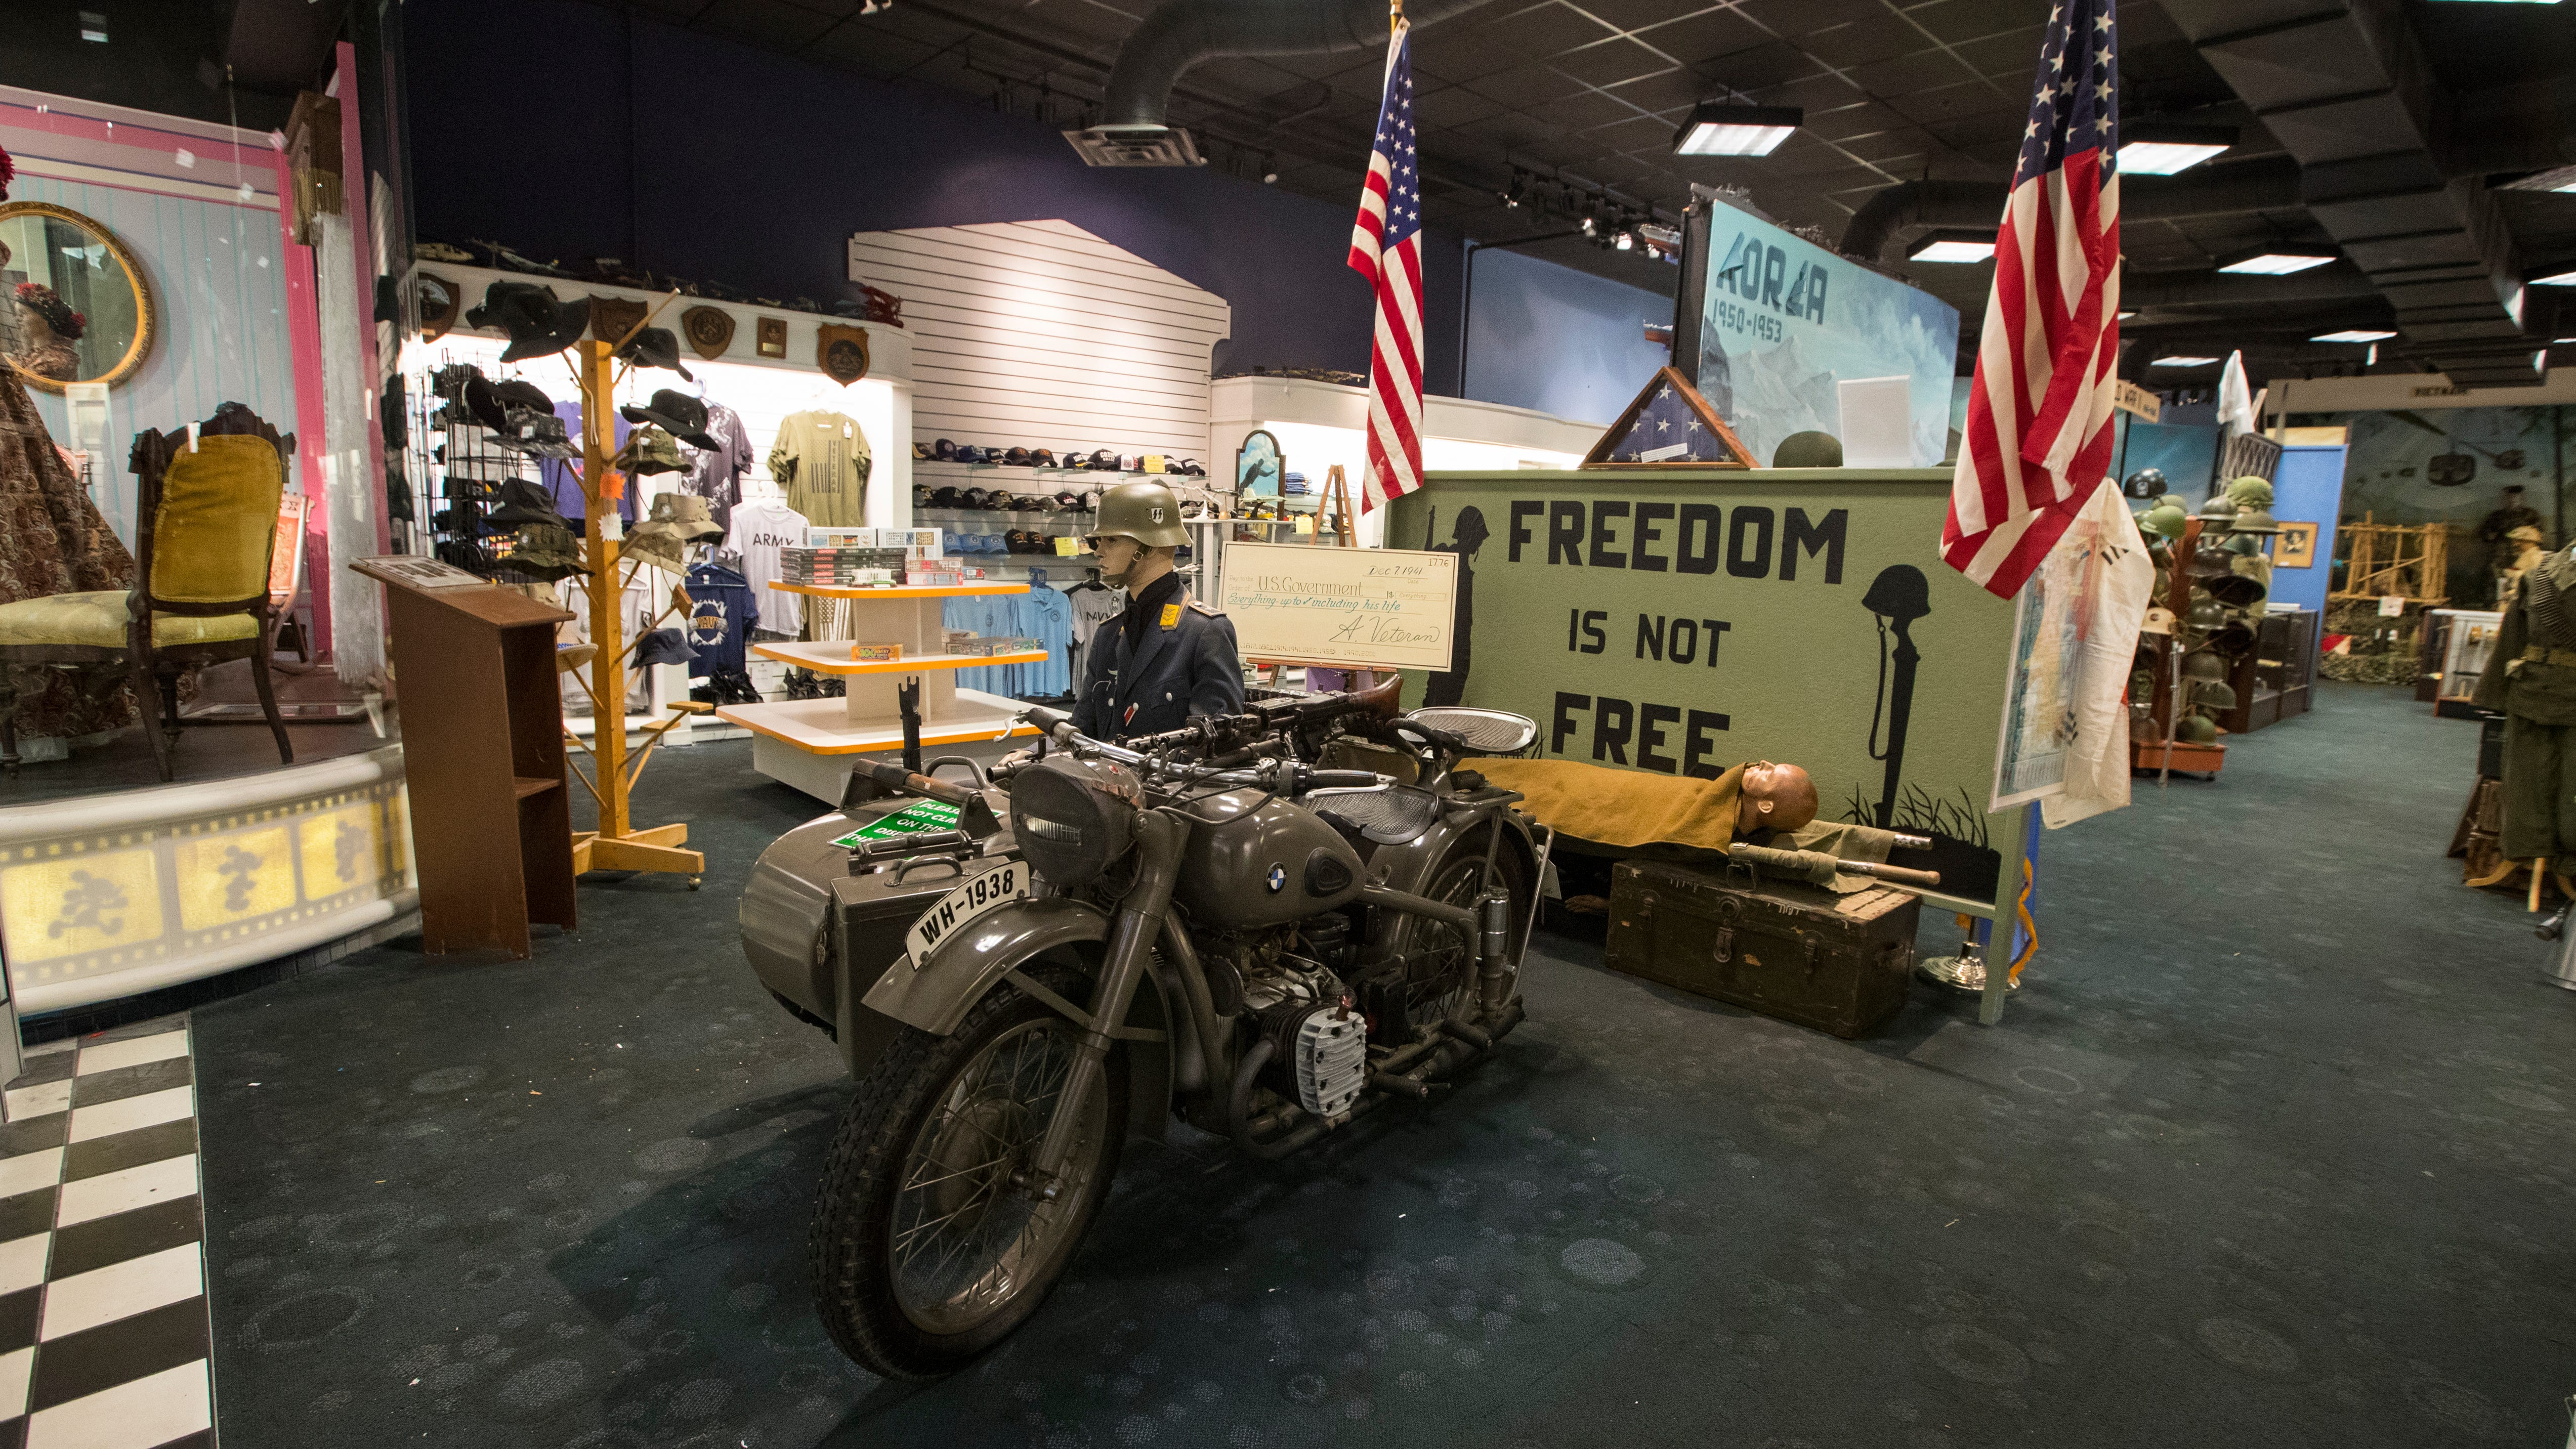 The Southwest Florida Military Museum has found a new home and will be opening soon at the former Disney store at Edison Mall.